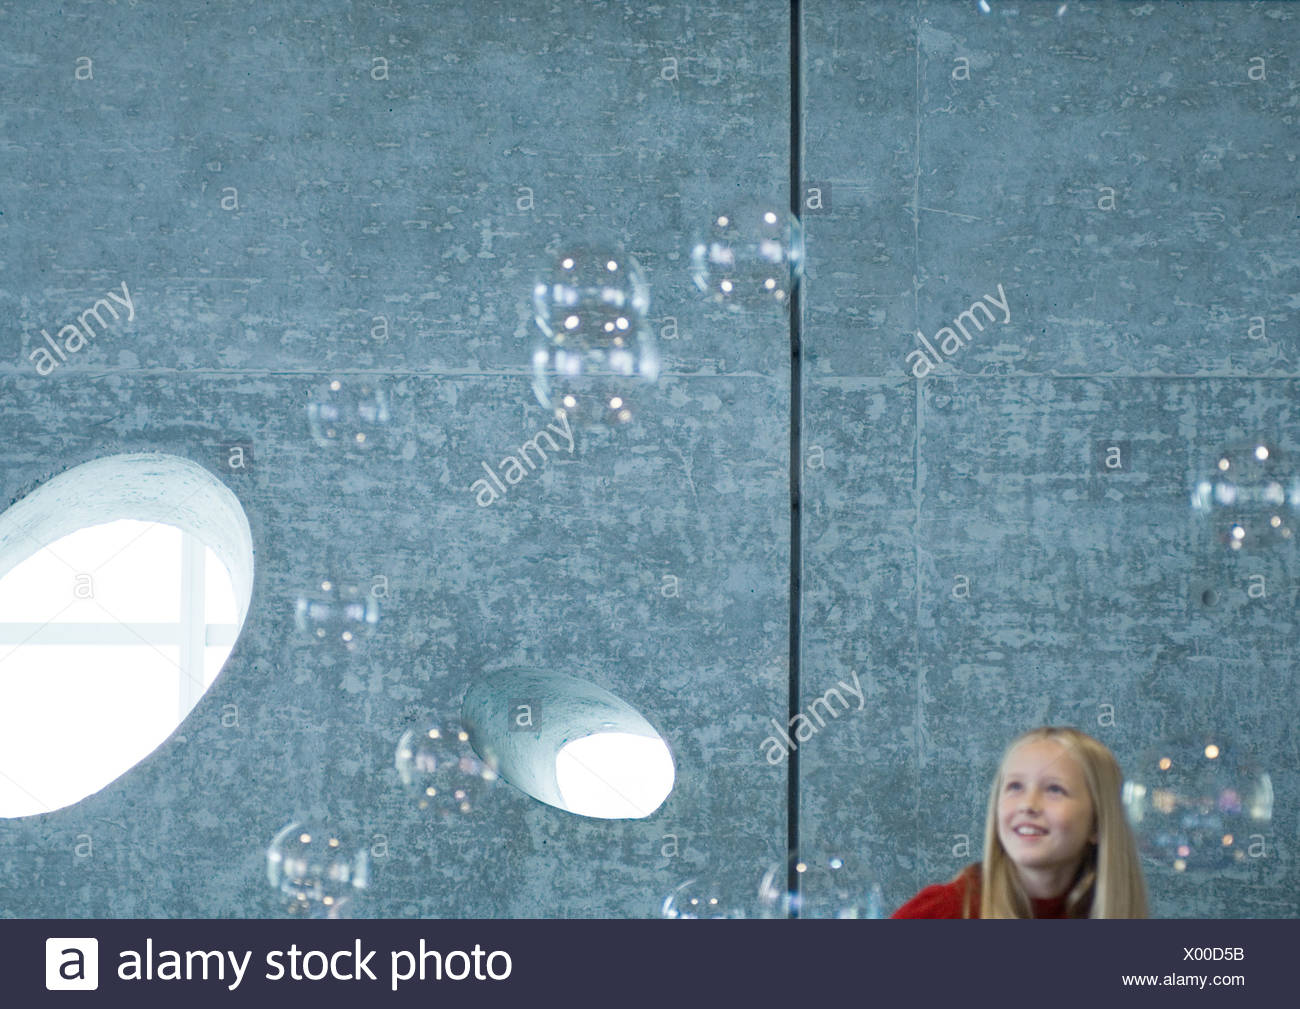 Girl looking at bubbles - Stock Image